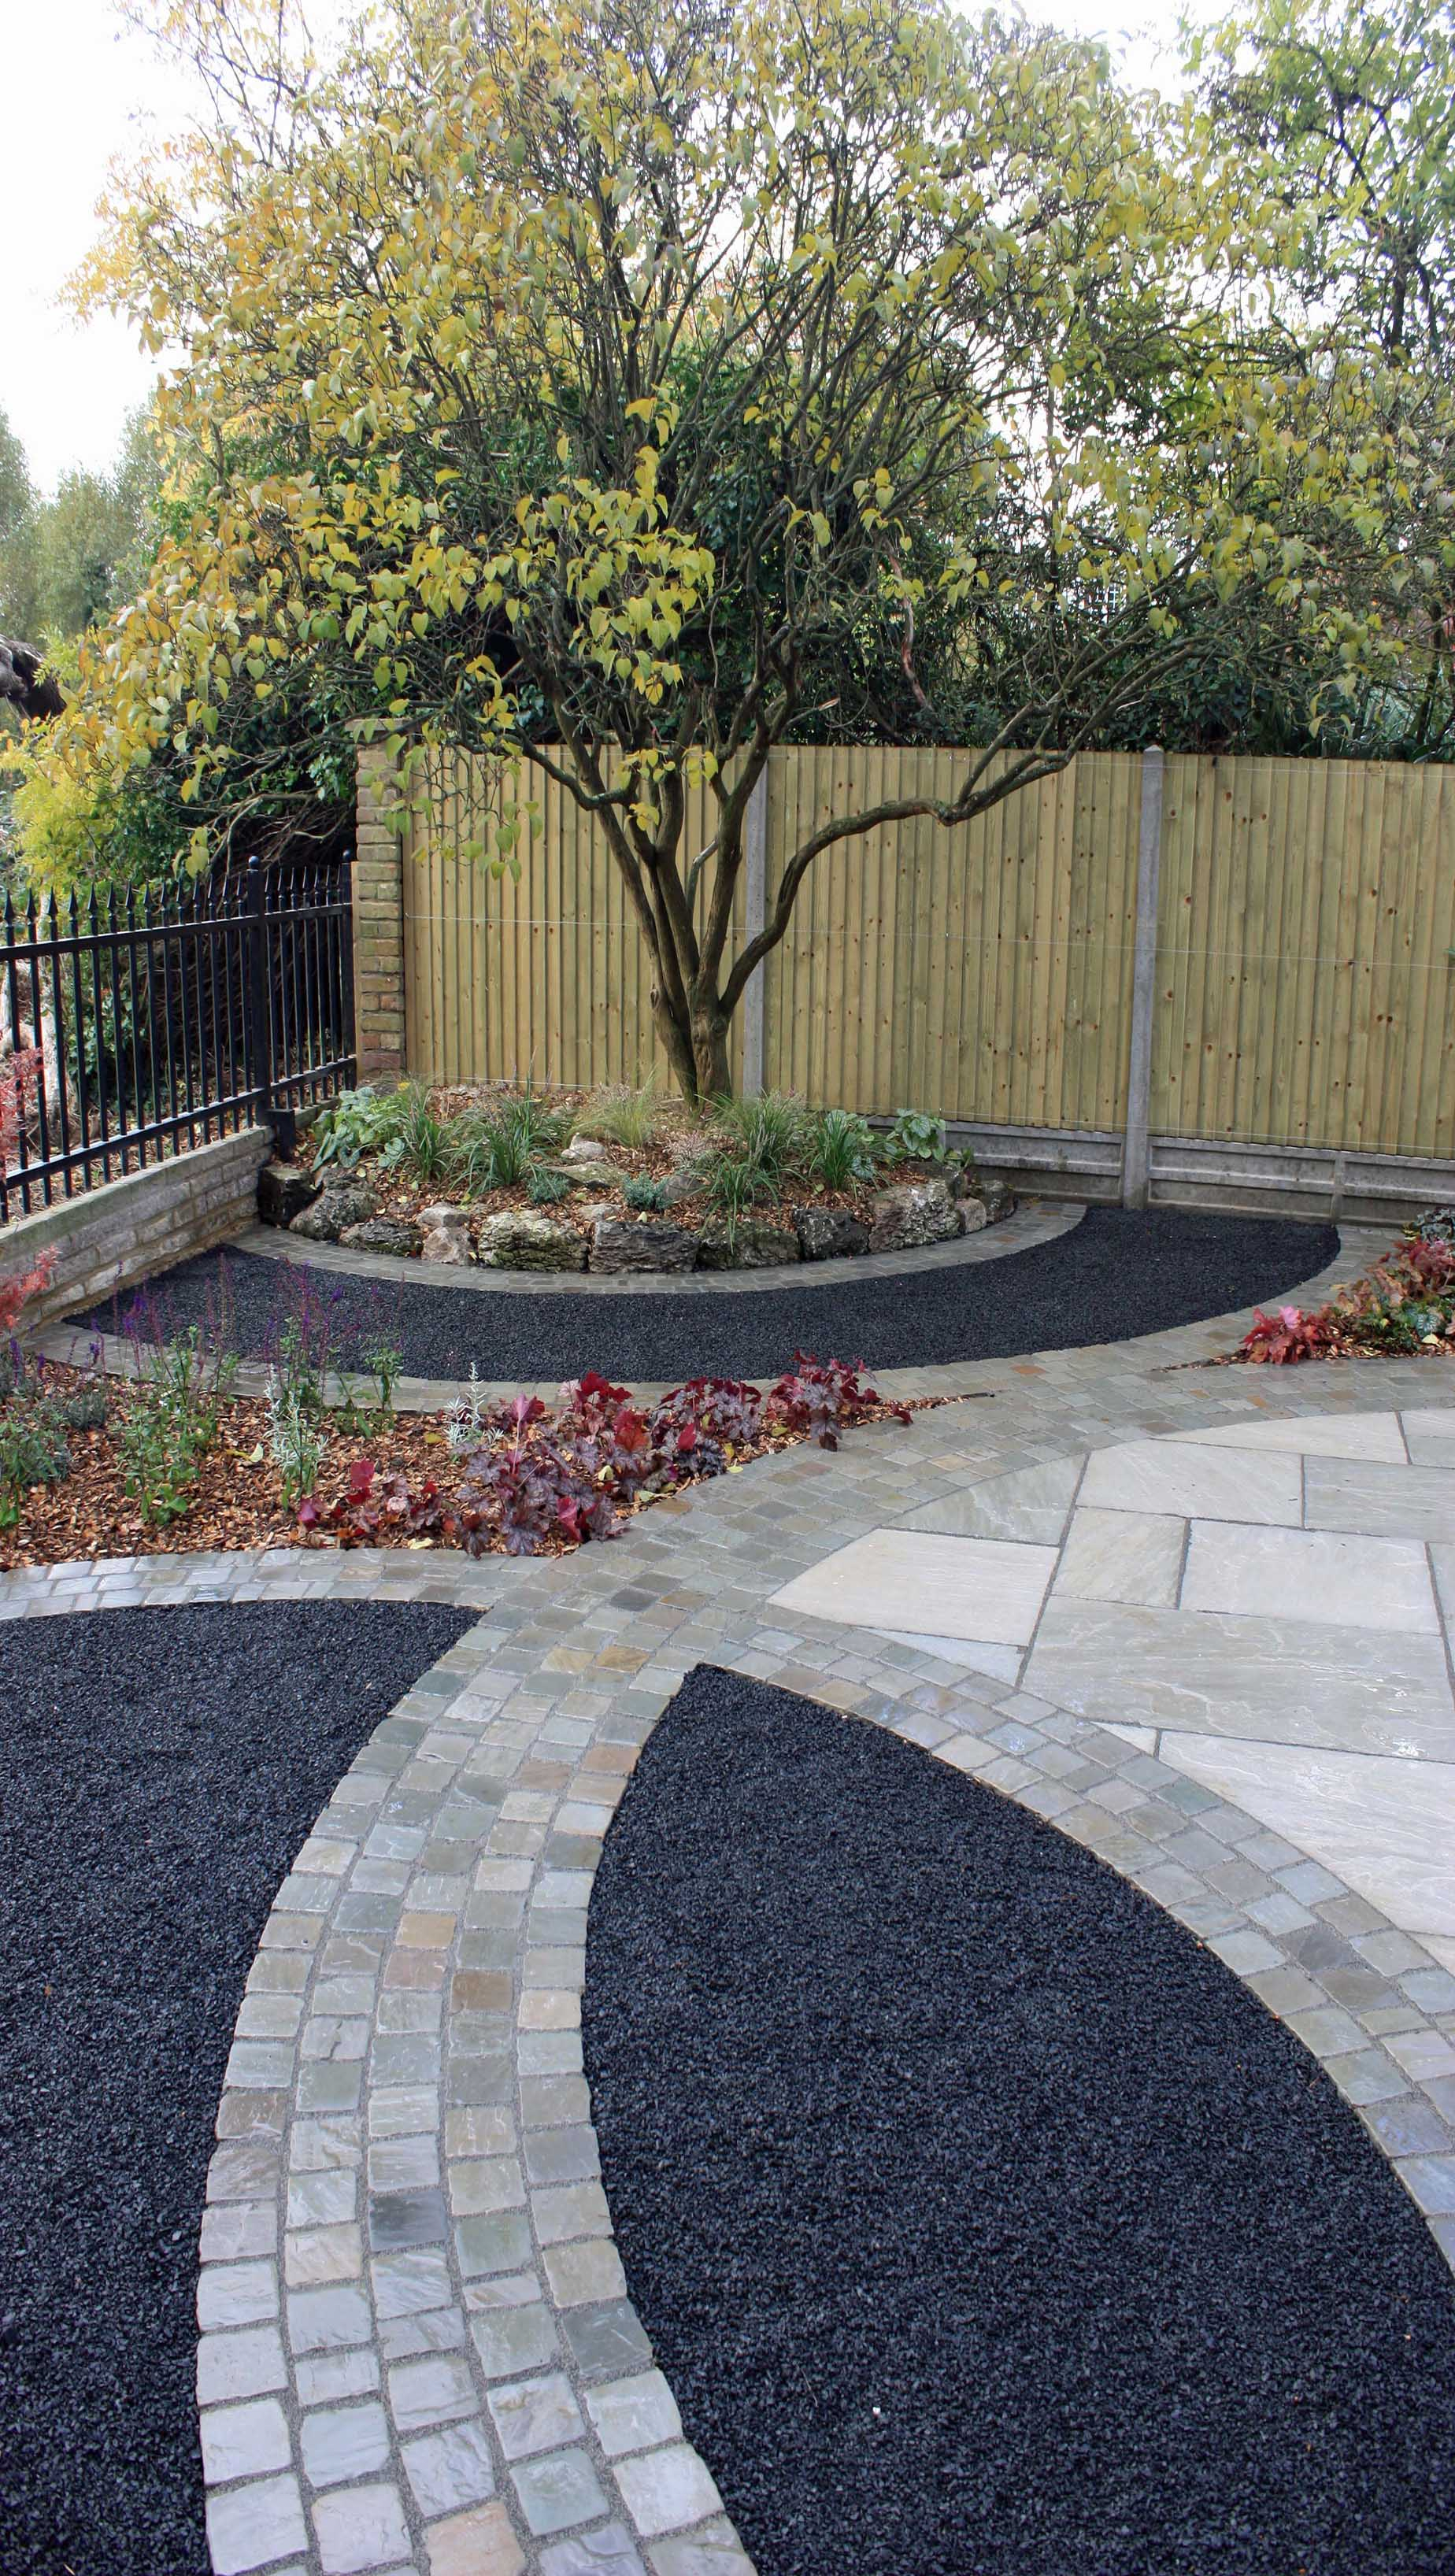 basalt paving with featherboard fencing